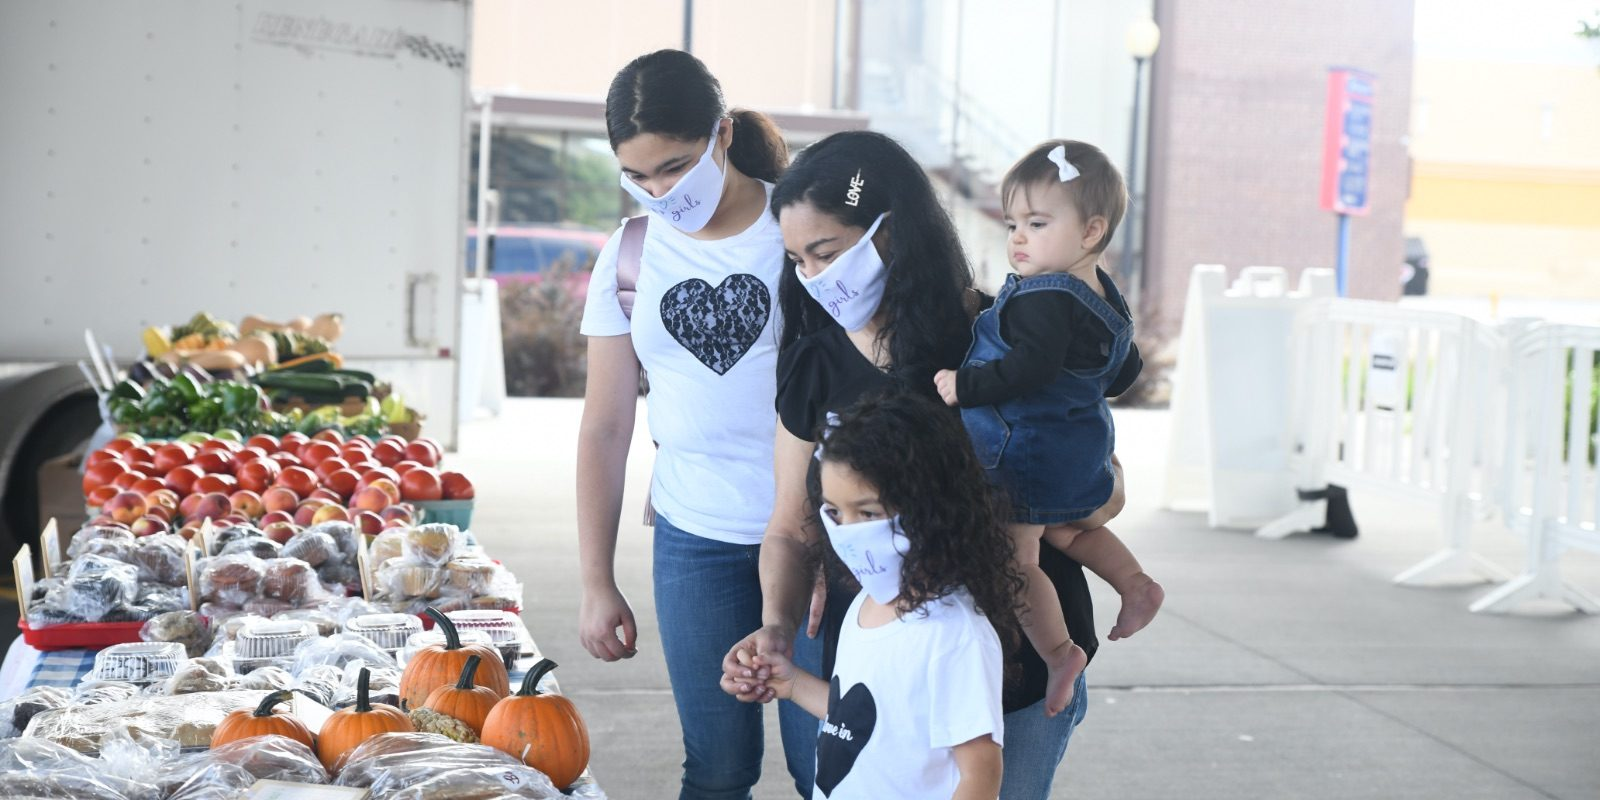 Elayna Fernández and her daughters browse the Uptown Farmers Market in Independence, MO